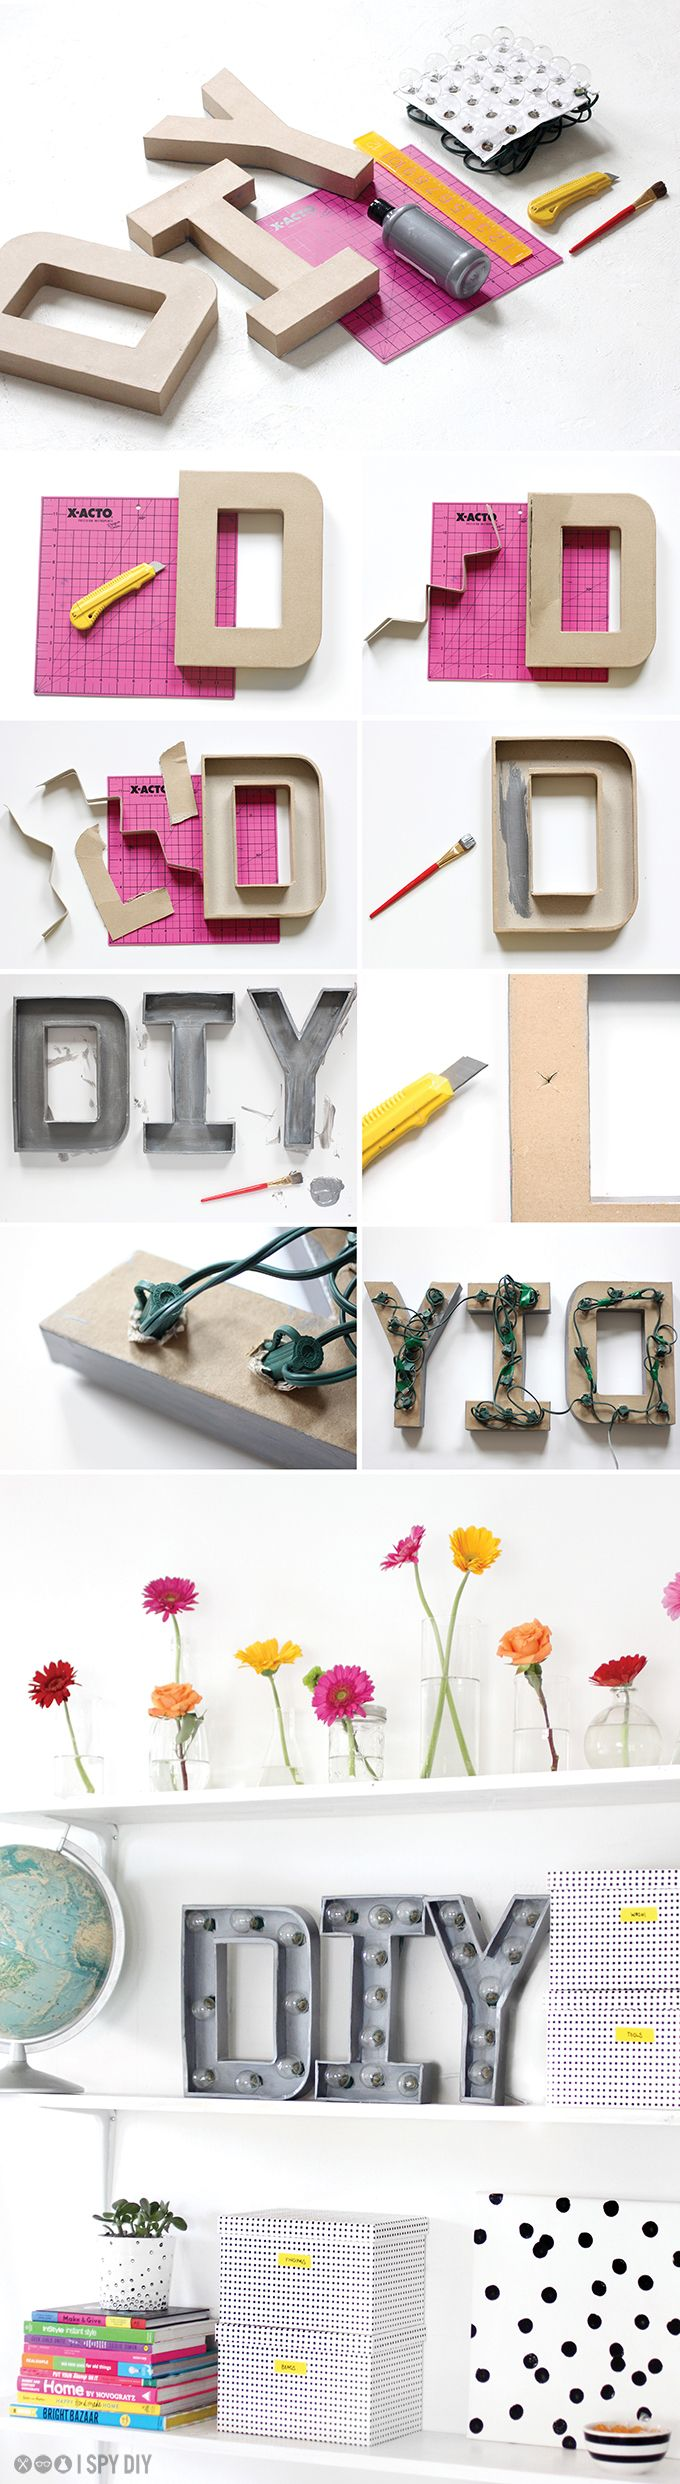 MY DIY | Marquee Letter Sign | I SPY DIY